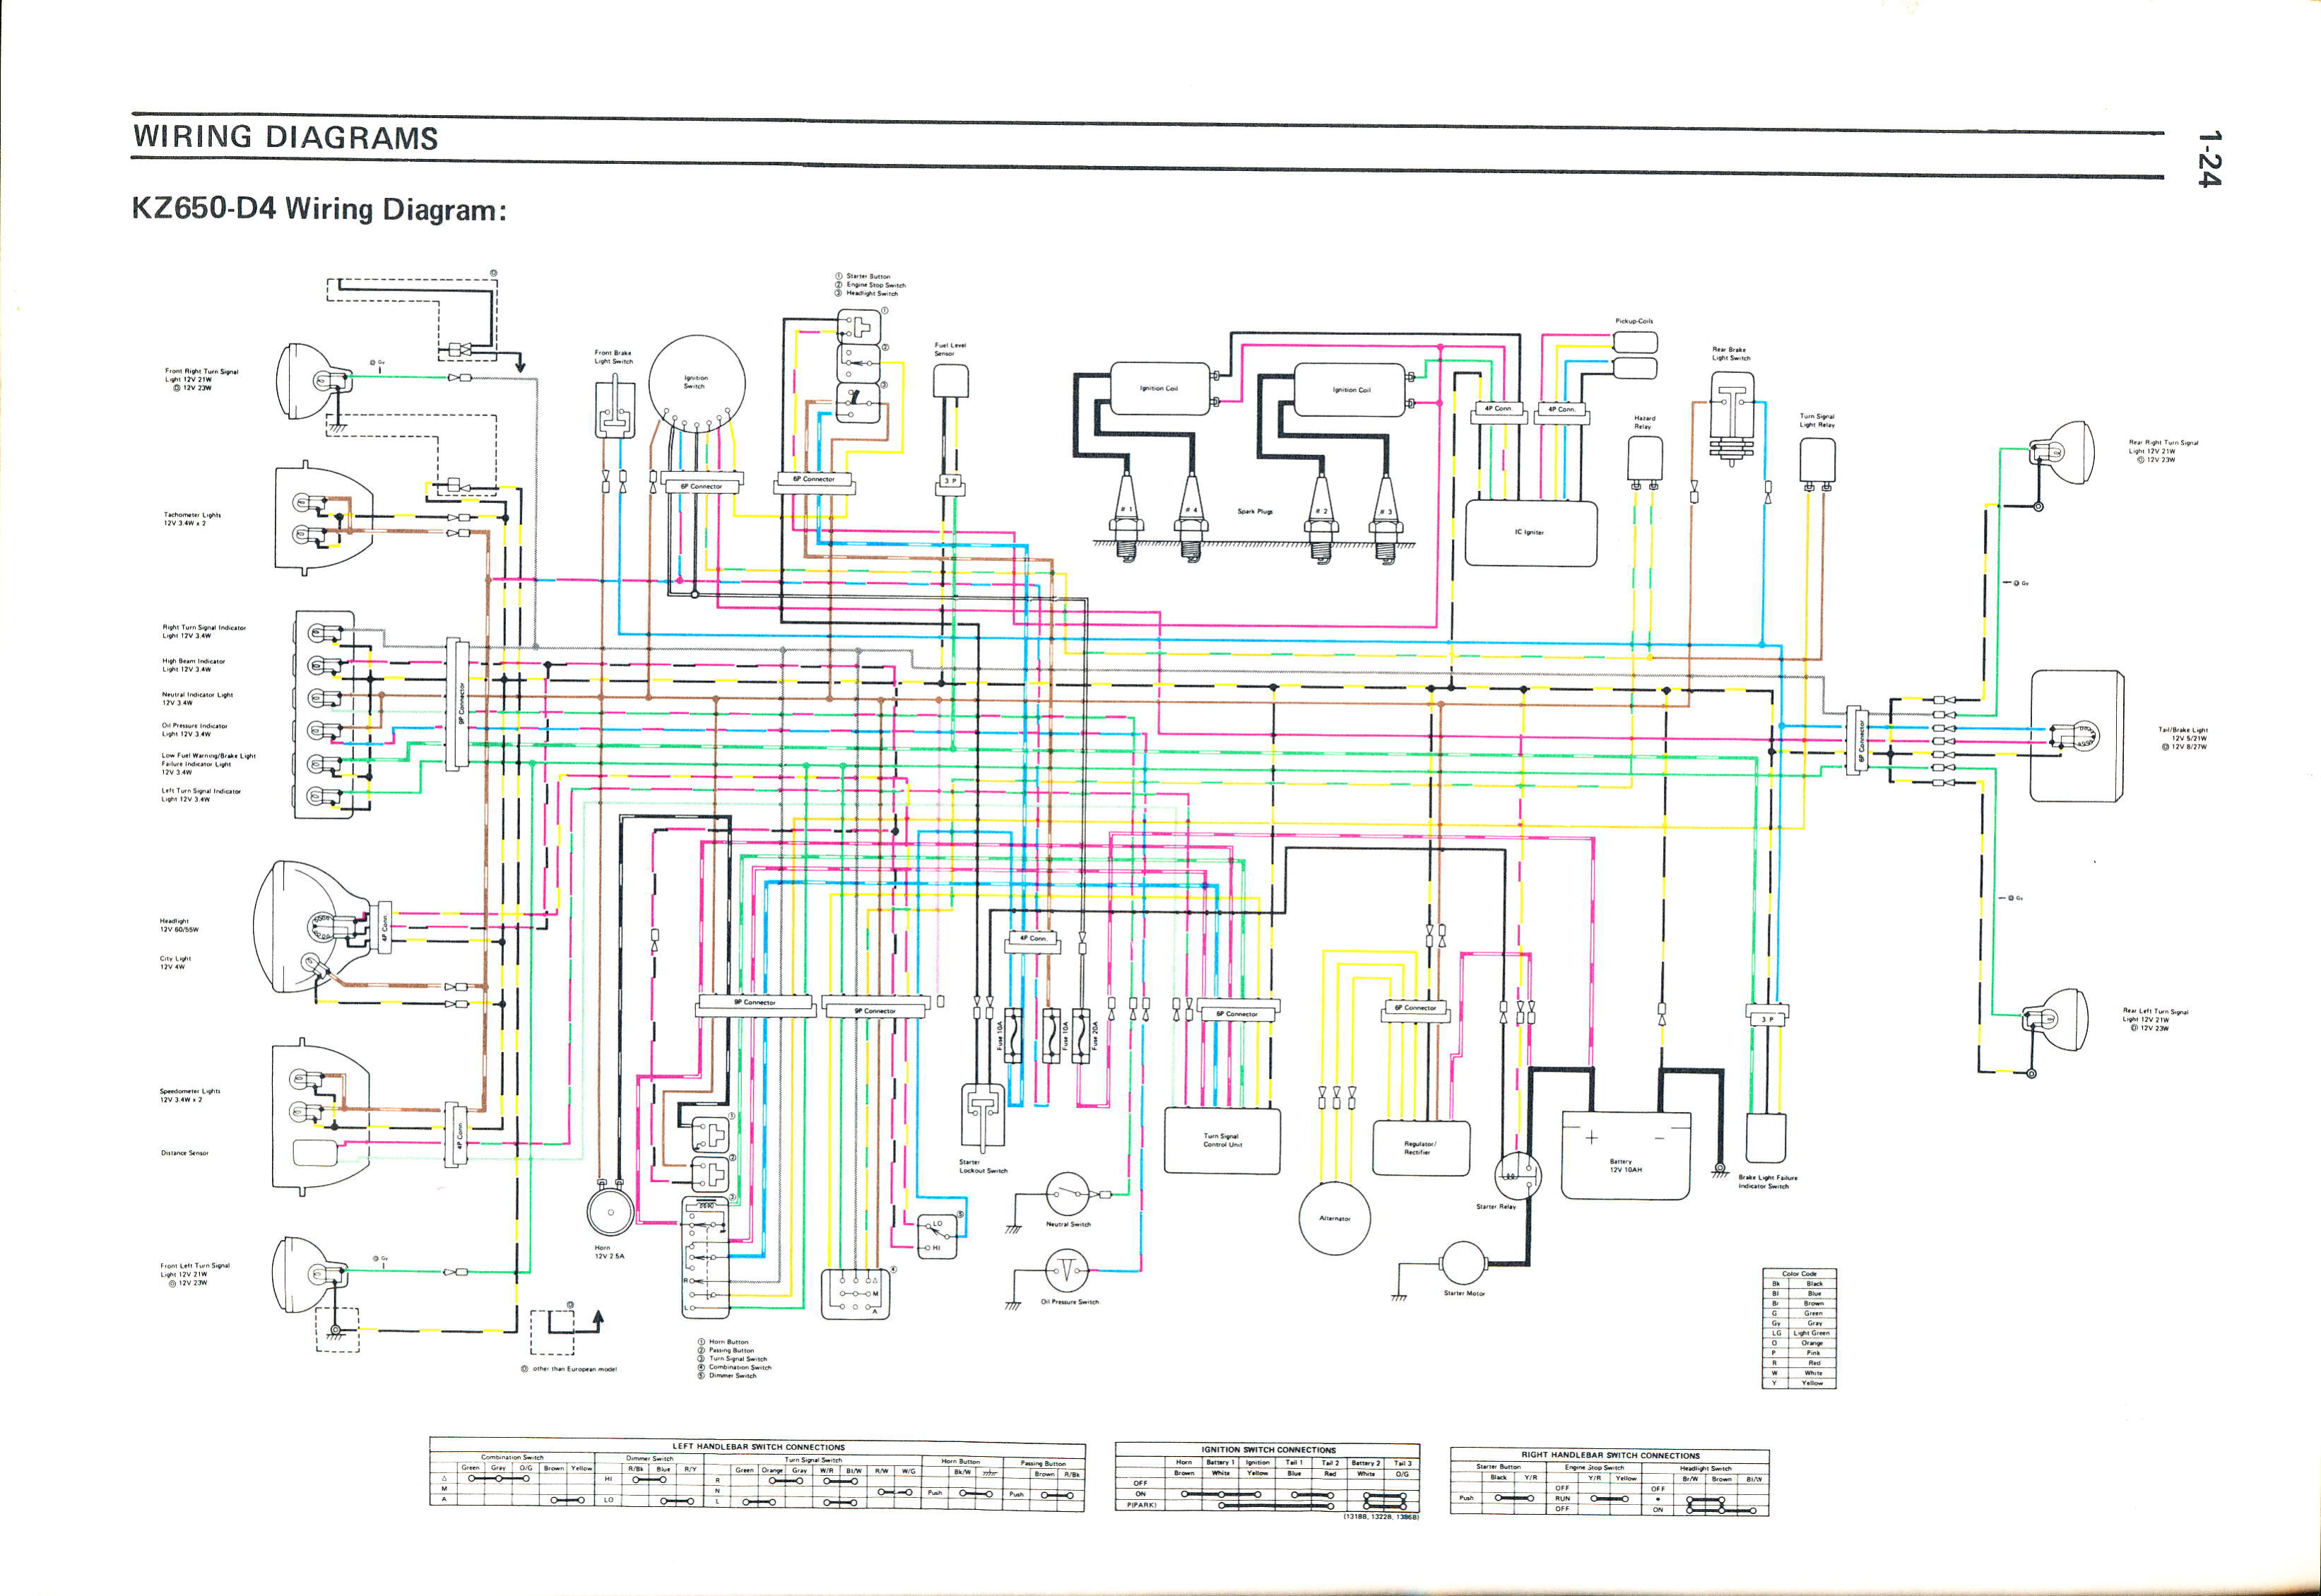 OEM Service Manual KZ650 D4 subaru wiring harness diagram subaru free wiring diagrams Wiring Harness Diagram at n-0.co